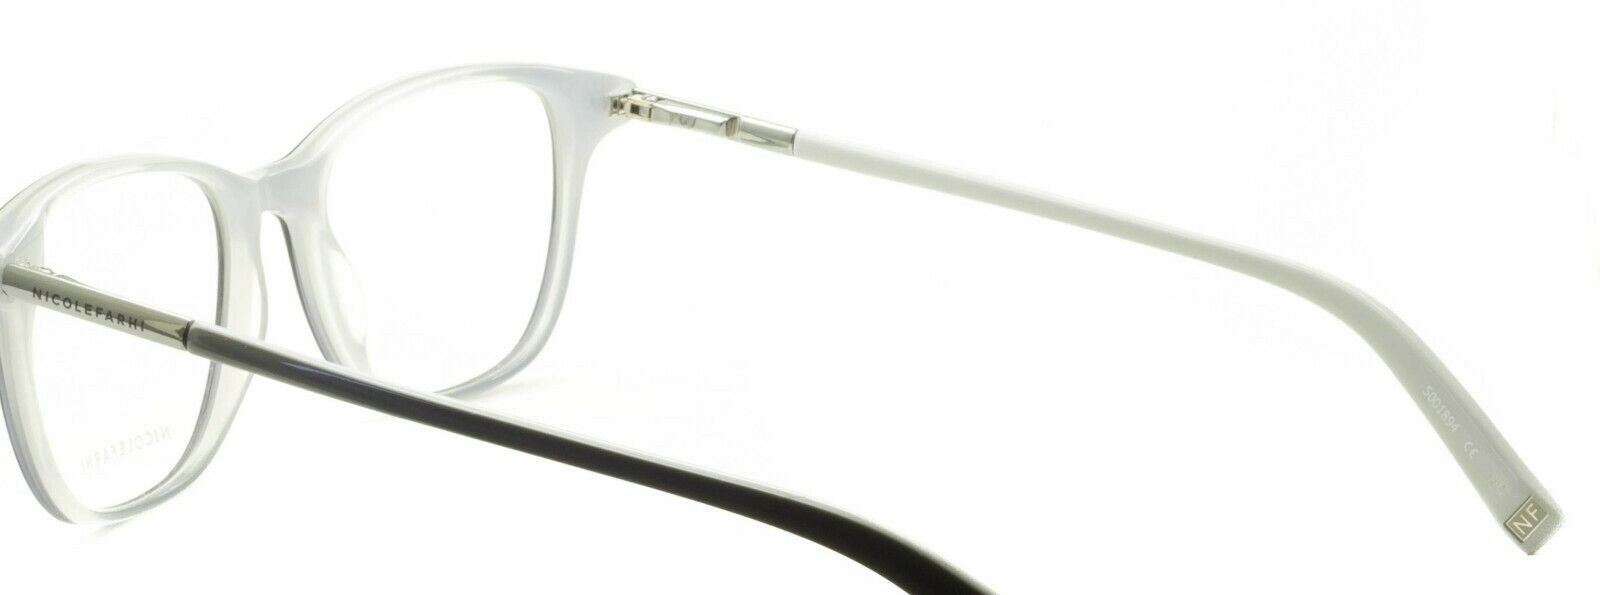 Nicole Farhi 08 30565579 Eyewear Glasses RX Optical Eyeglasses FRAMES - TRUSTED